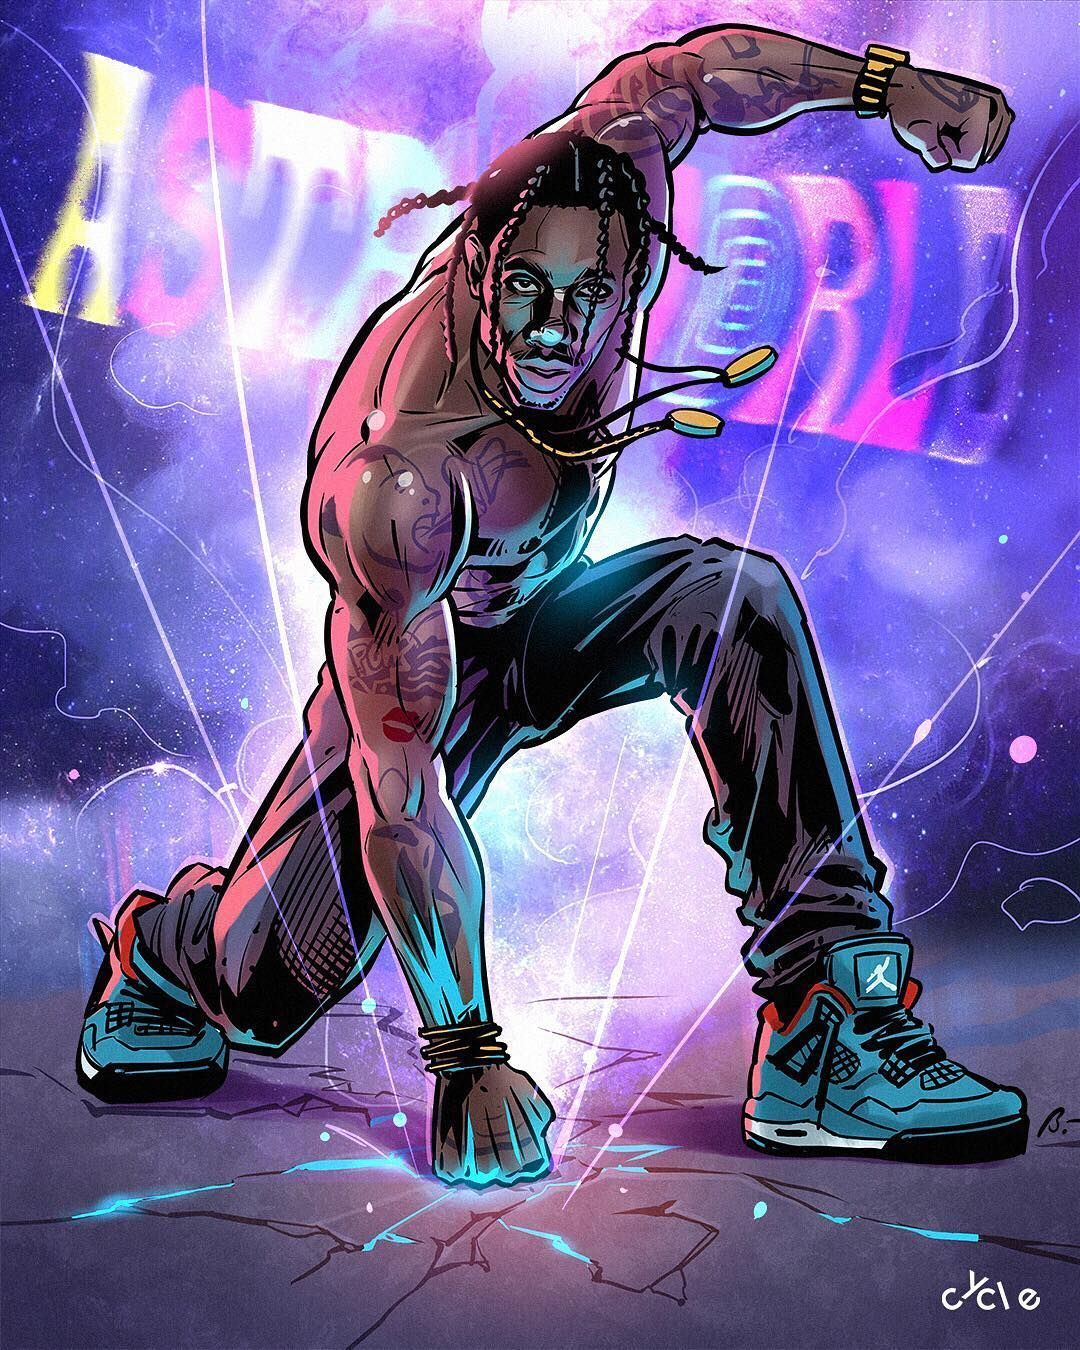 Travis Scott Astroworld Hero Travisscottwallpapers Travis Scott Astroworld Hero Travis Scott Wallpapers Travis Scott Art Travis Scott Tattoo